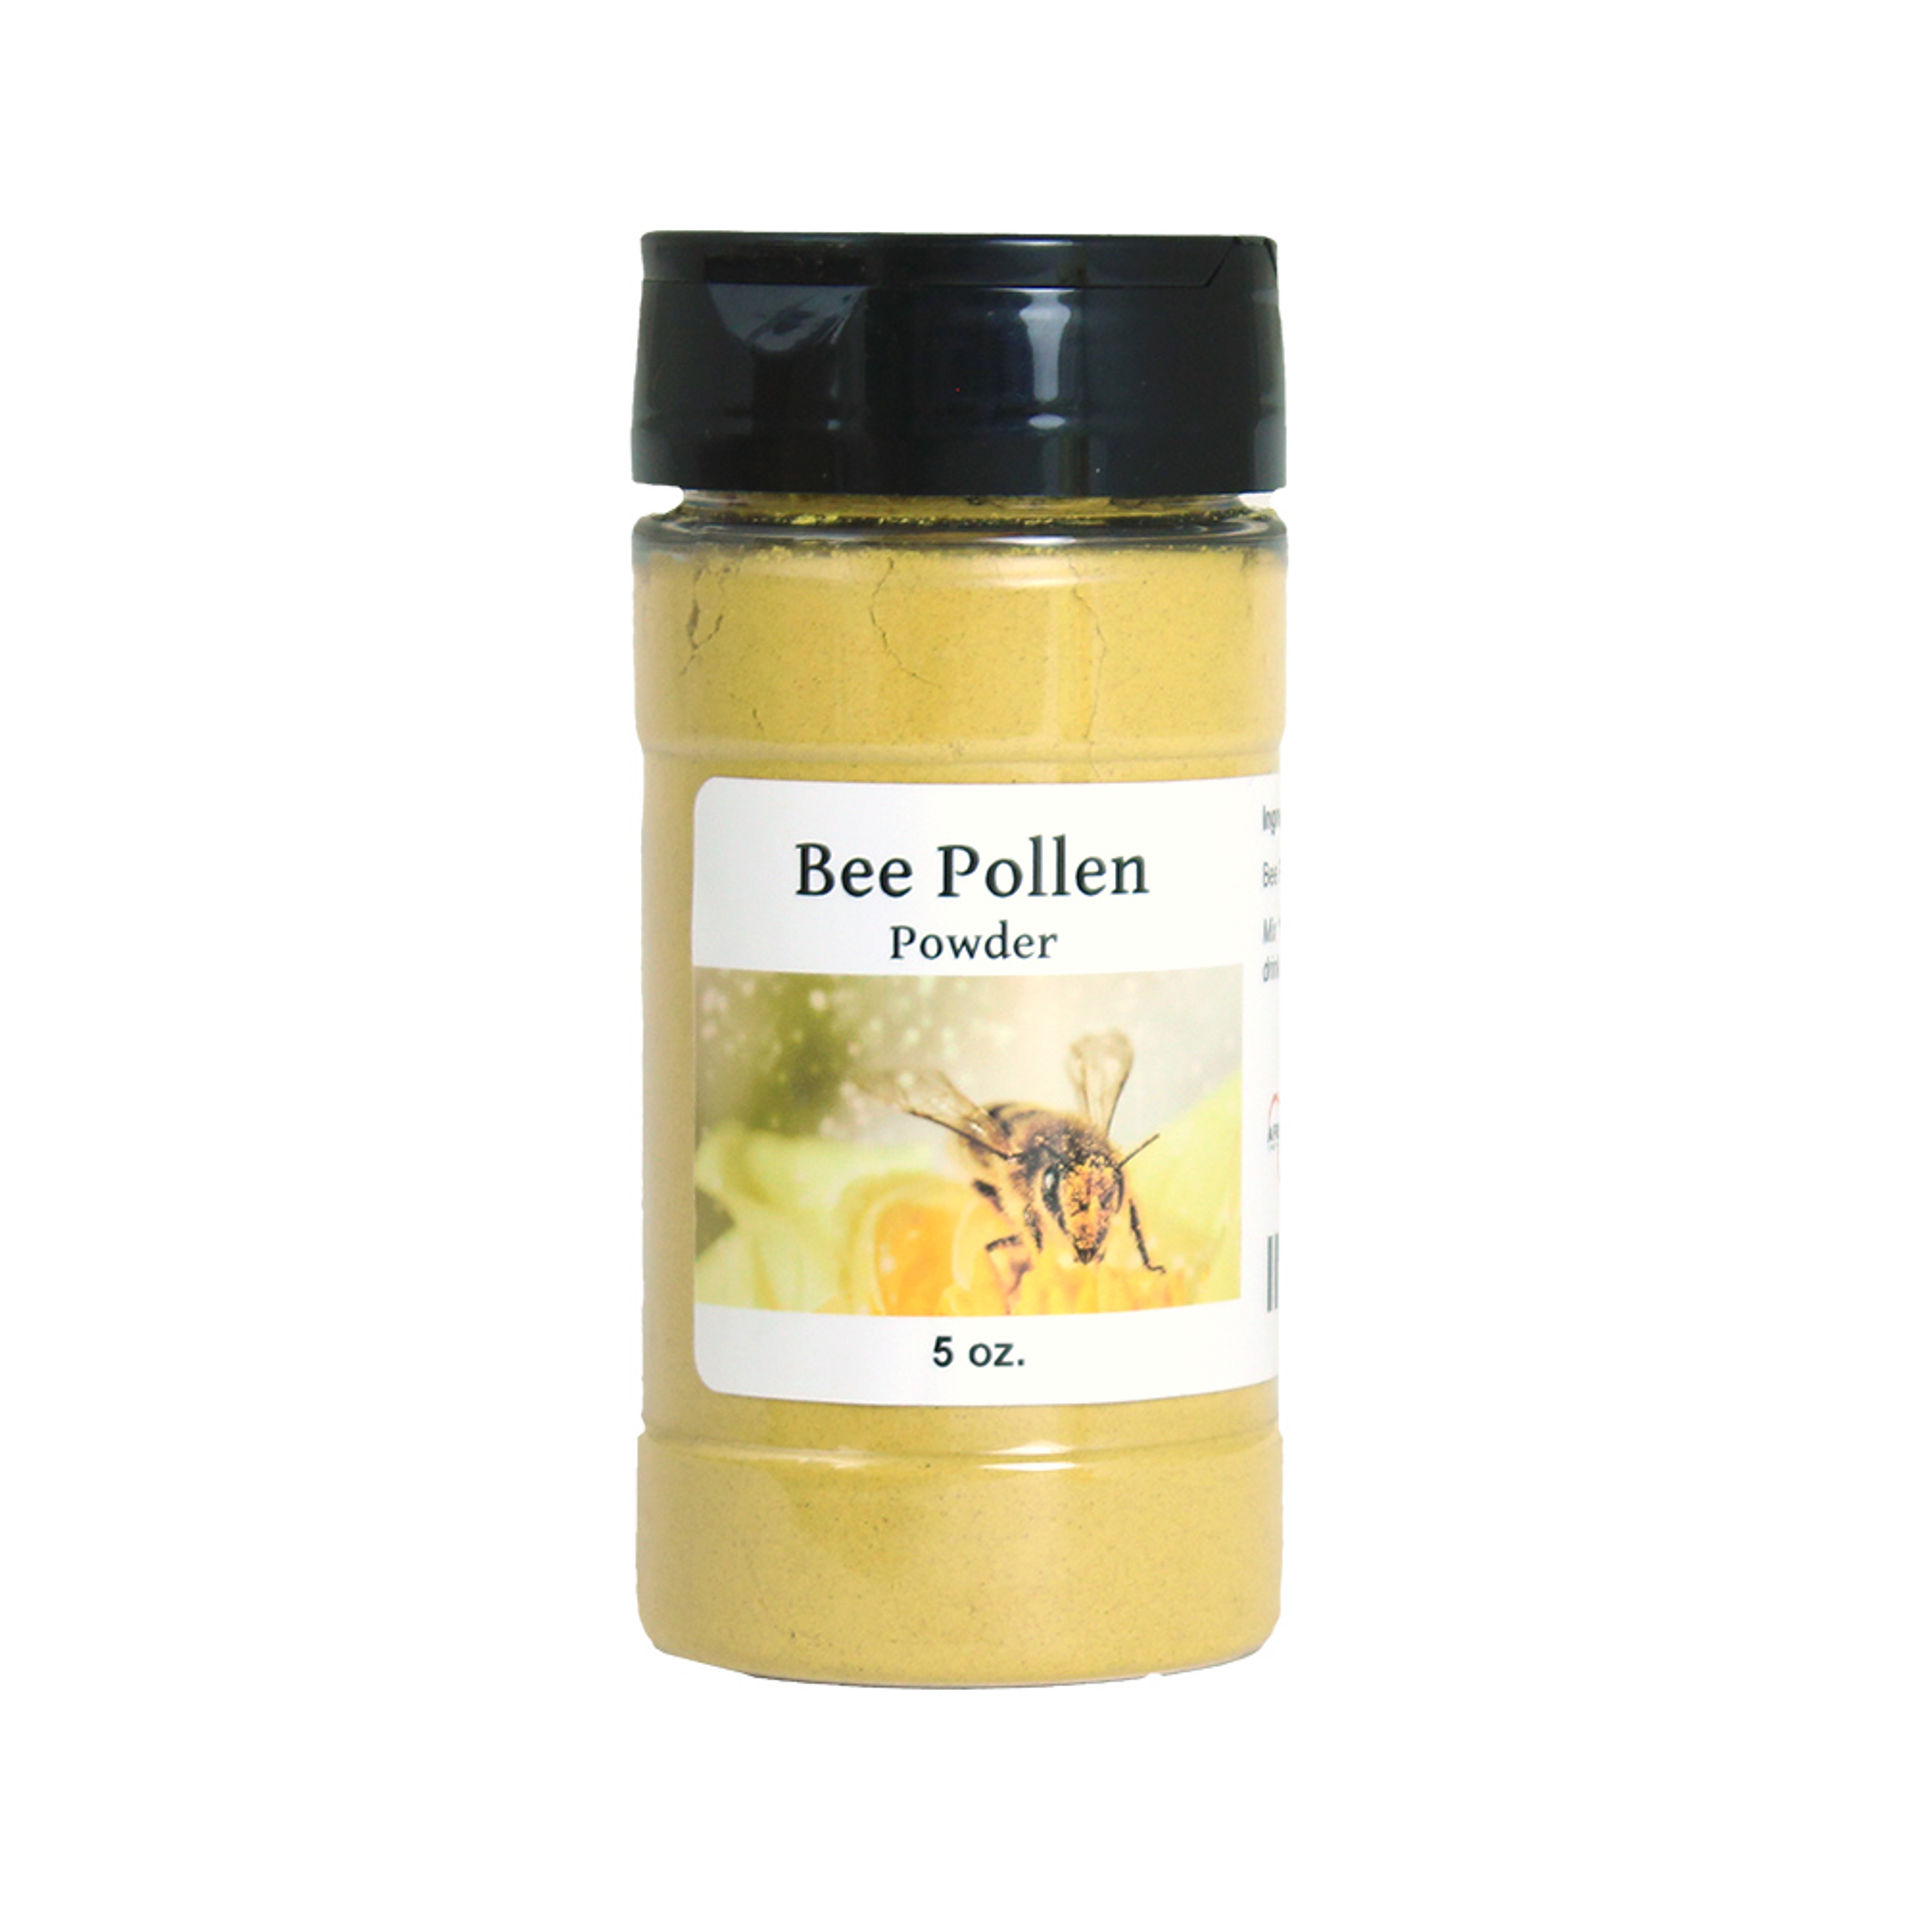 Picture of Bee Pollen Powder – 5 oz.